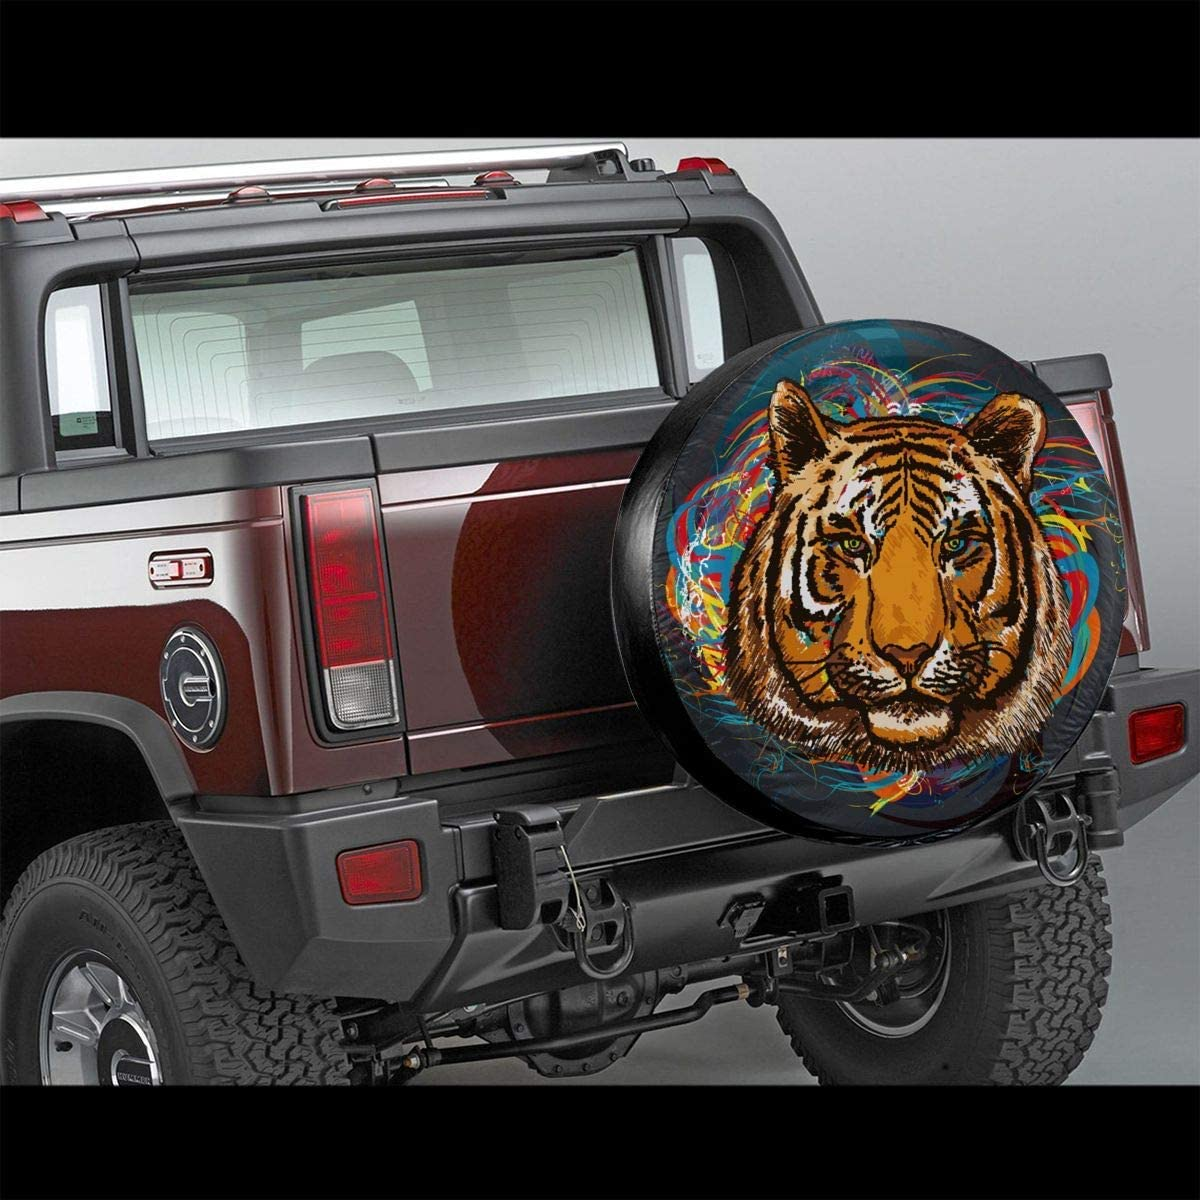 Fits Entire Wheel Xhayo Animal Art Tiger Head Wheel Cover Wheelcover Spare Tyre Tire for SUV,RV,Trailer,Truck Wheel